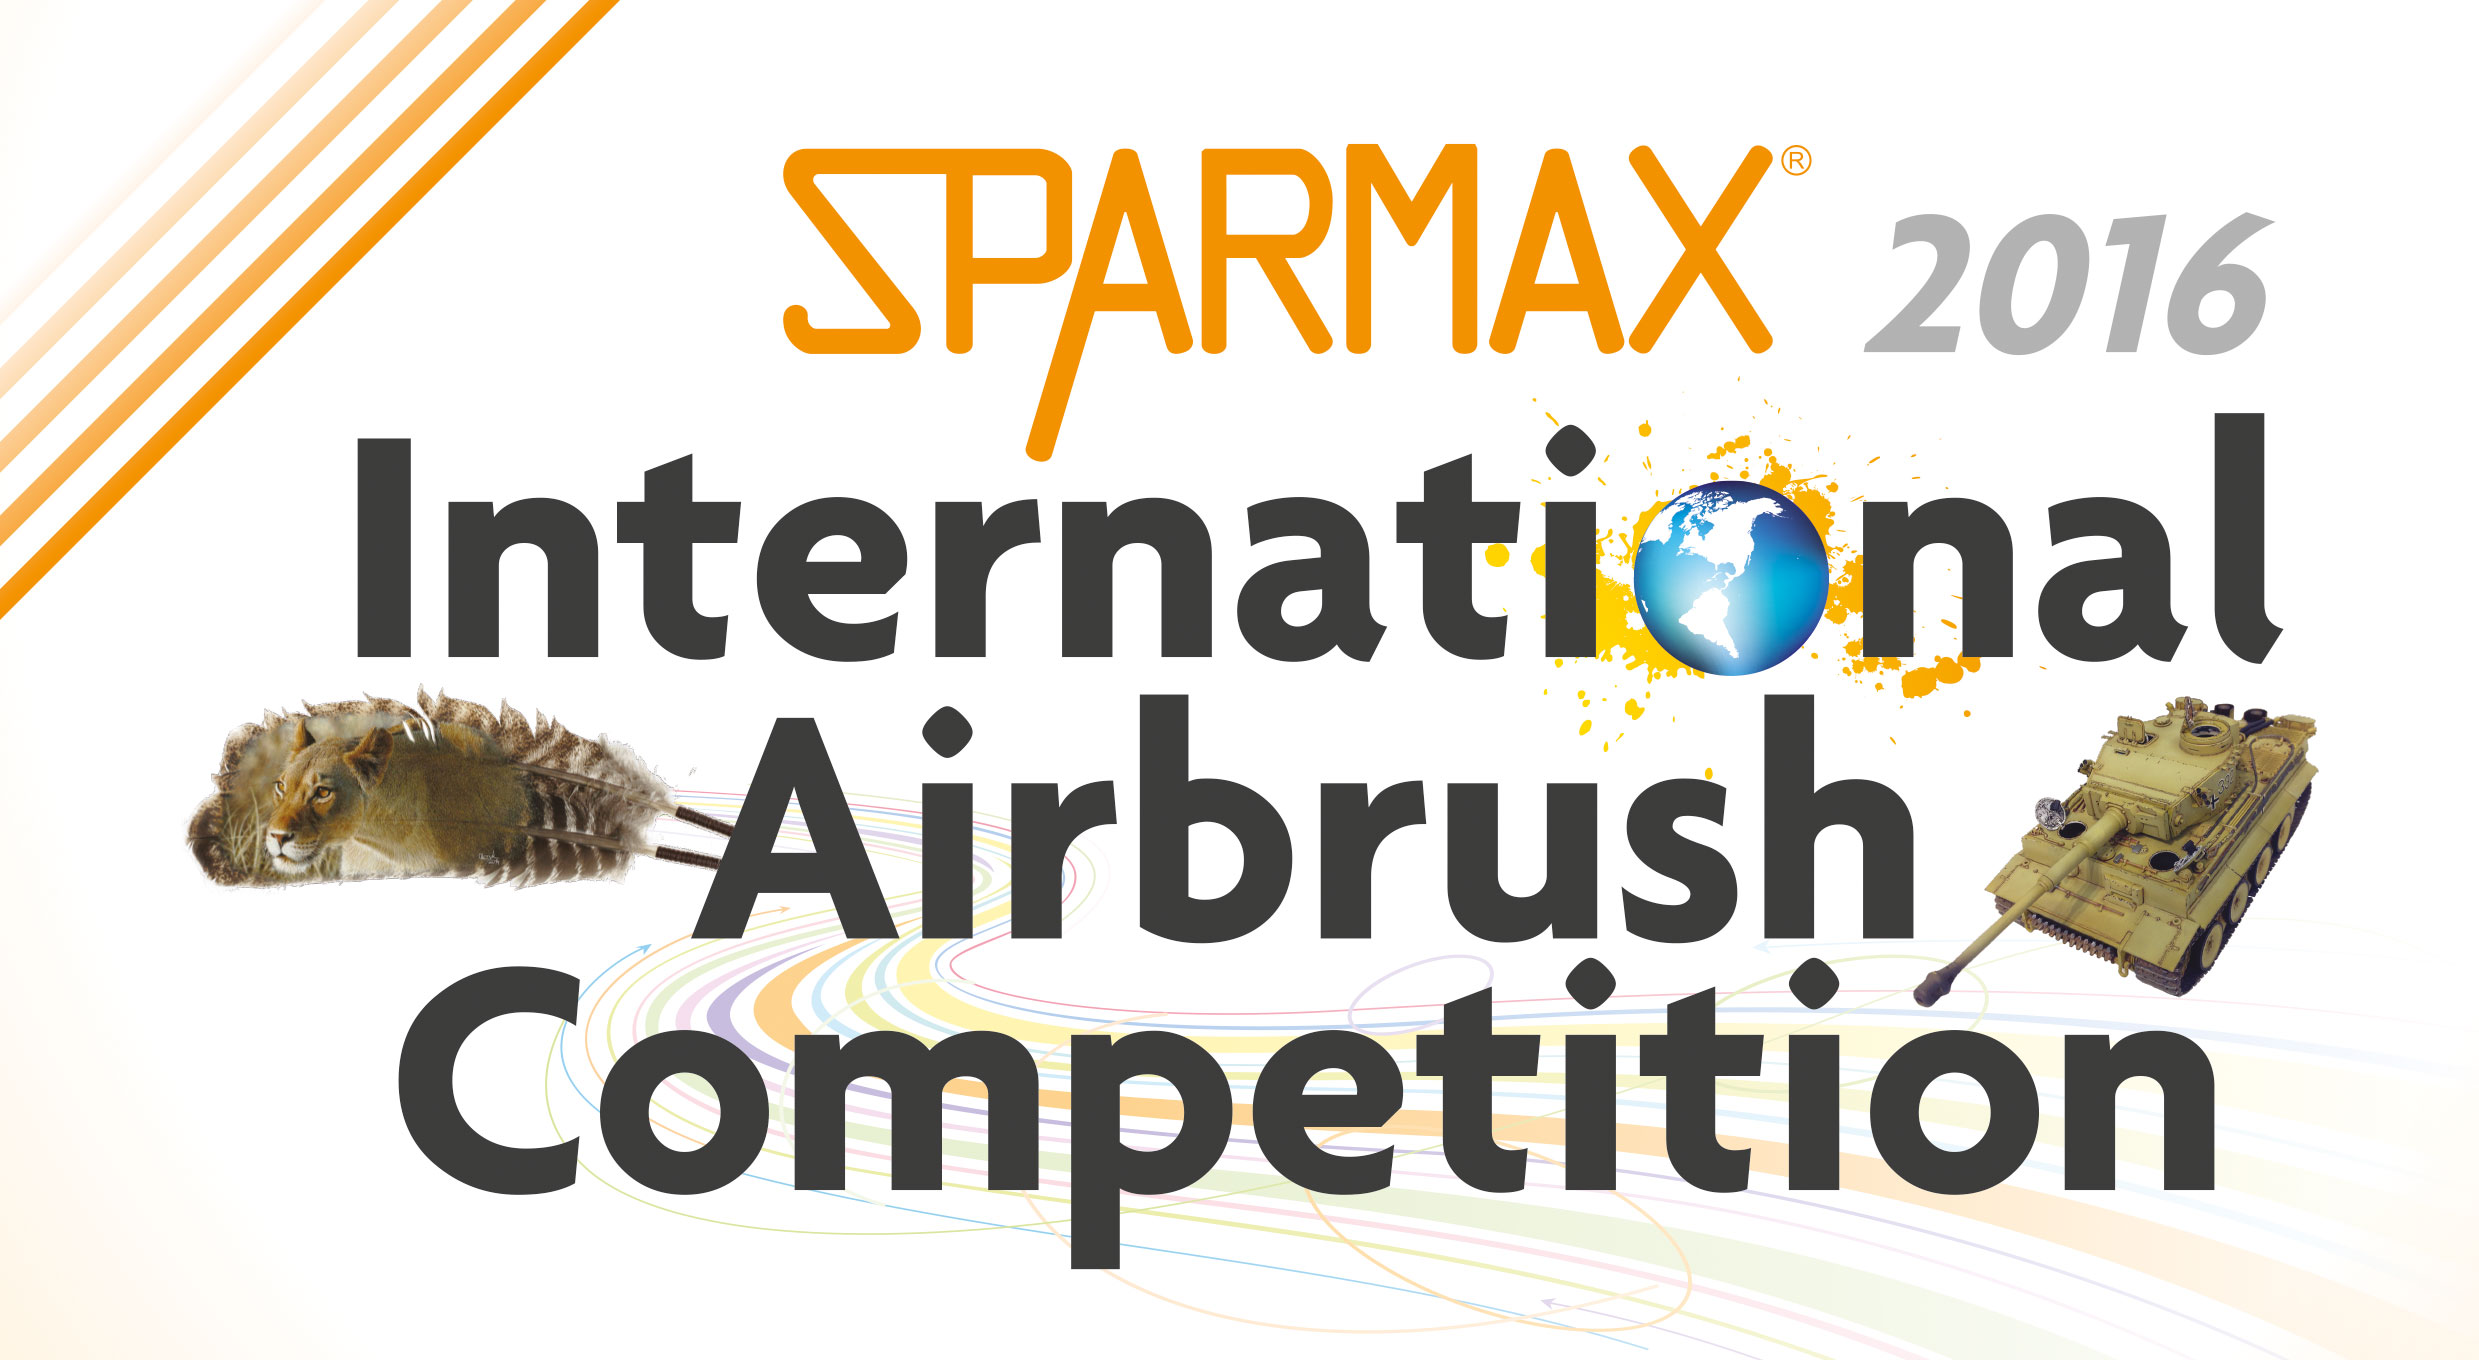 International Airbrush Competition by Sparmax